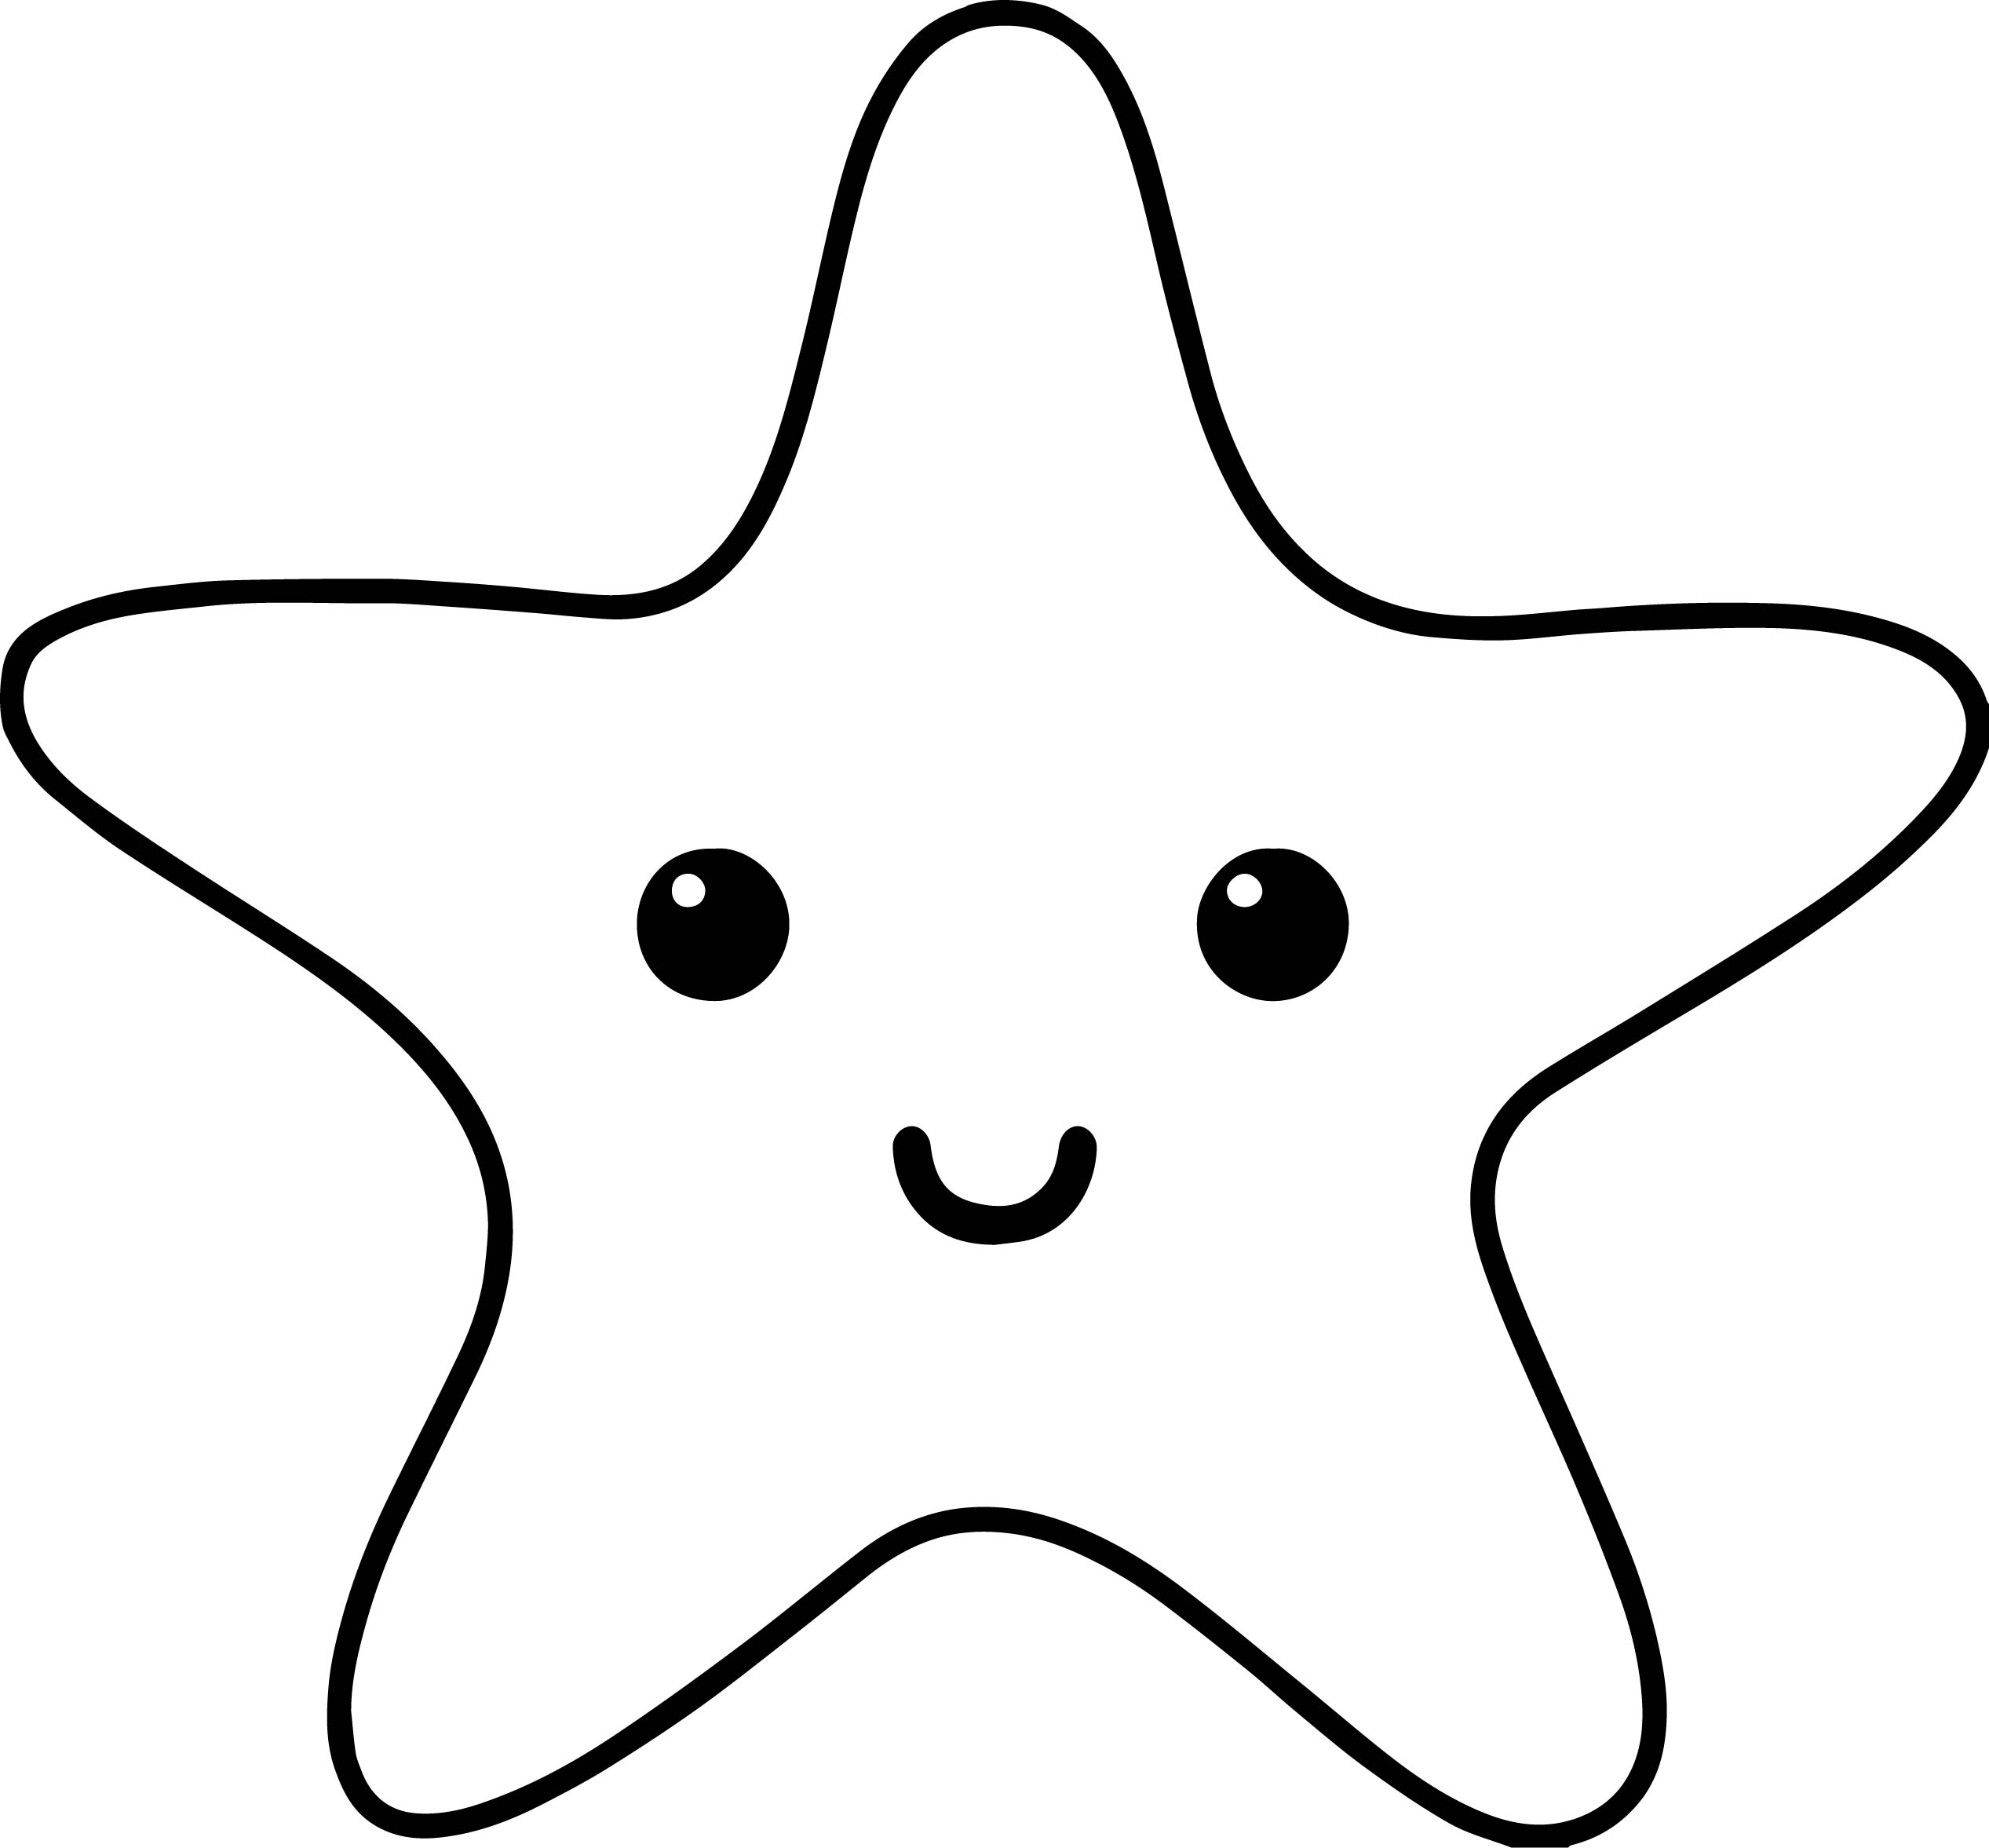 starfish is late for work starfish in a happy mood and dancing a